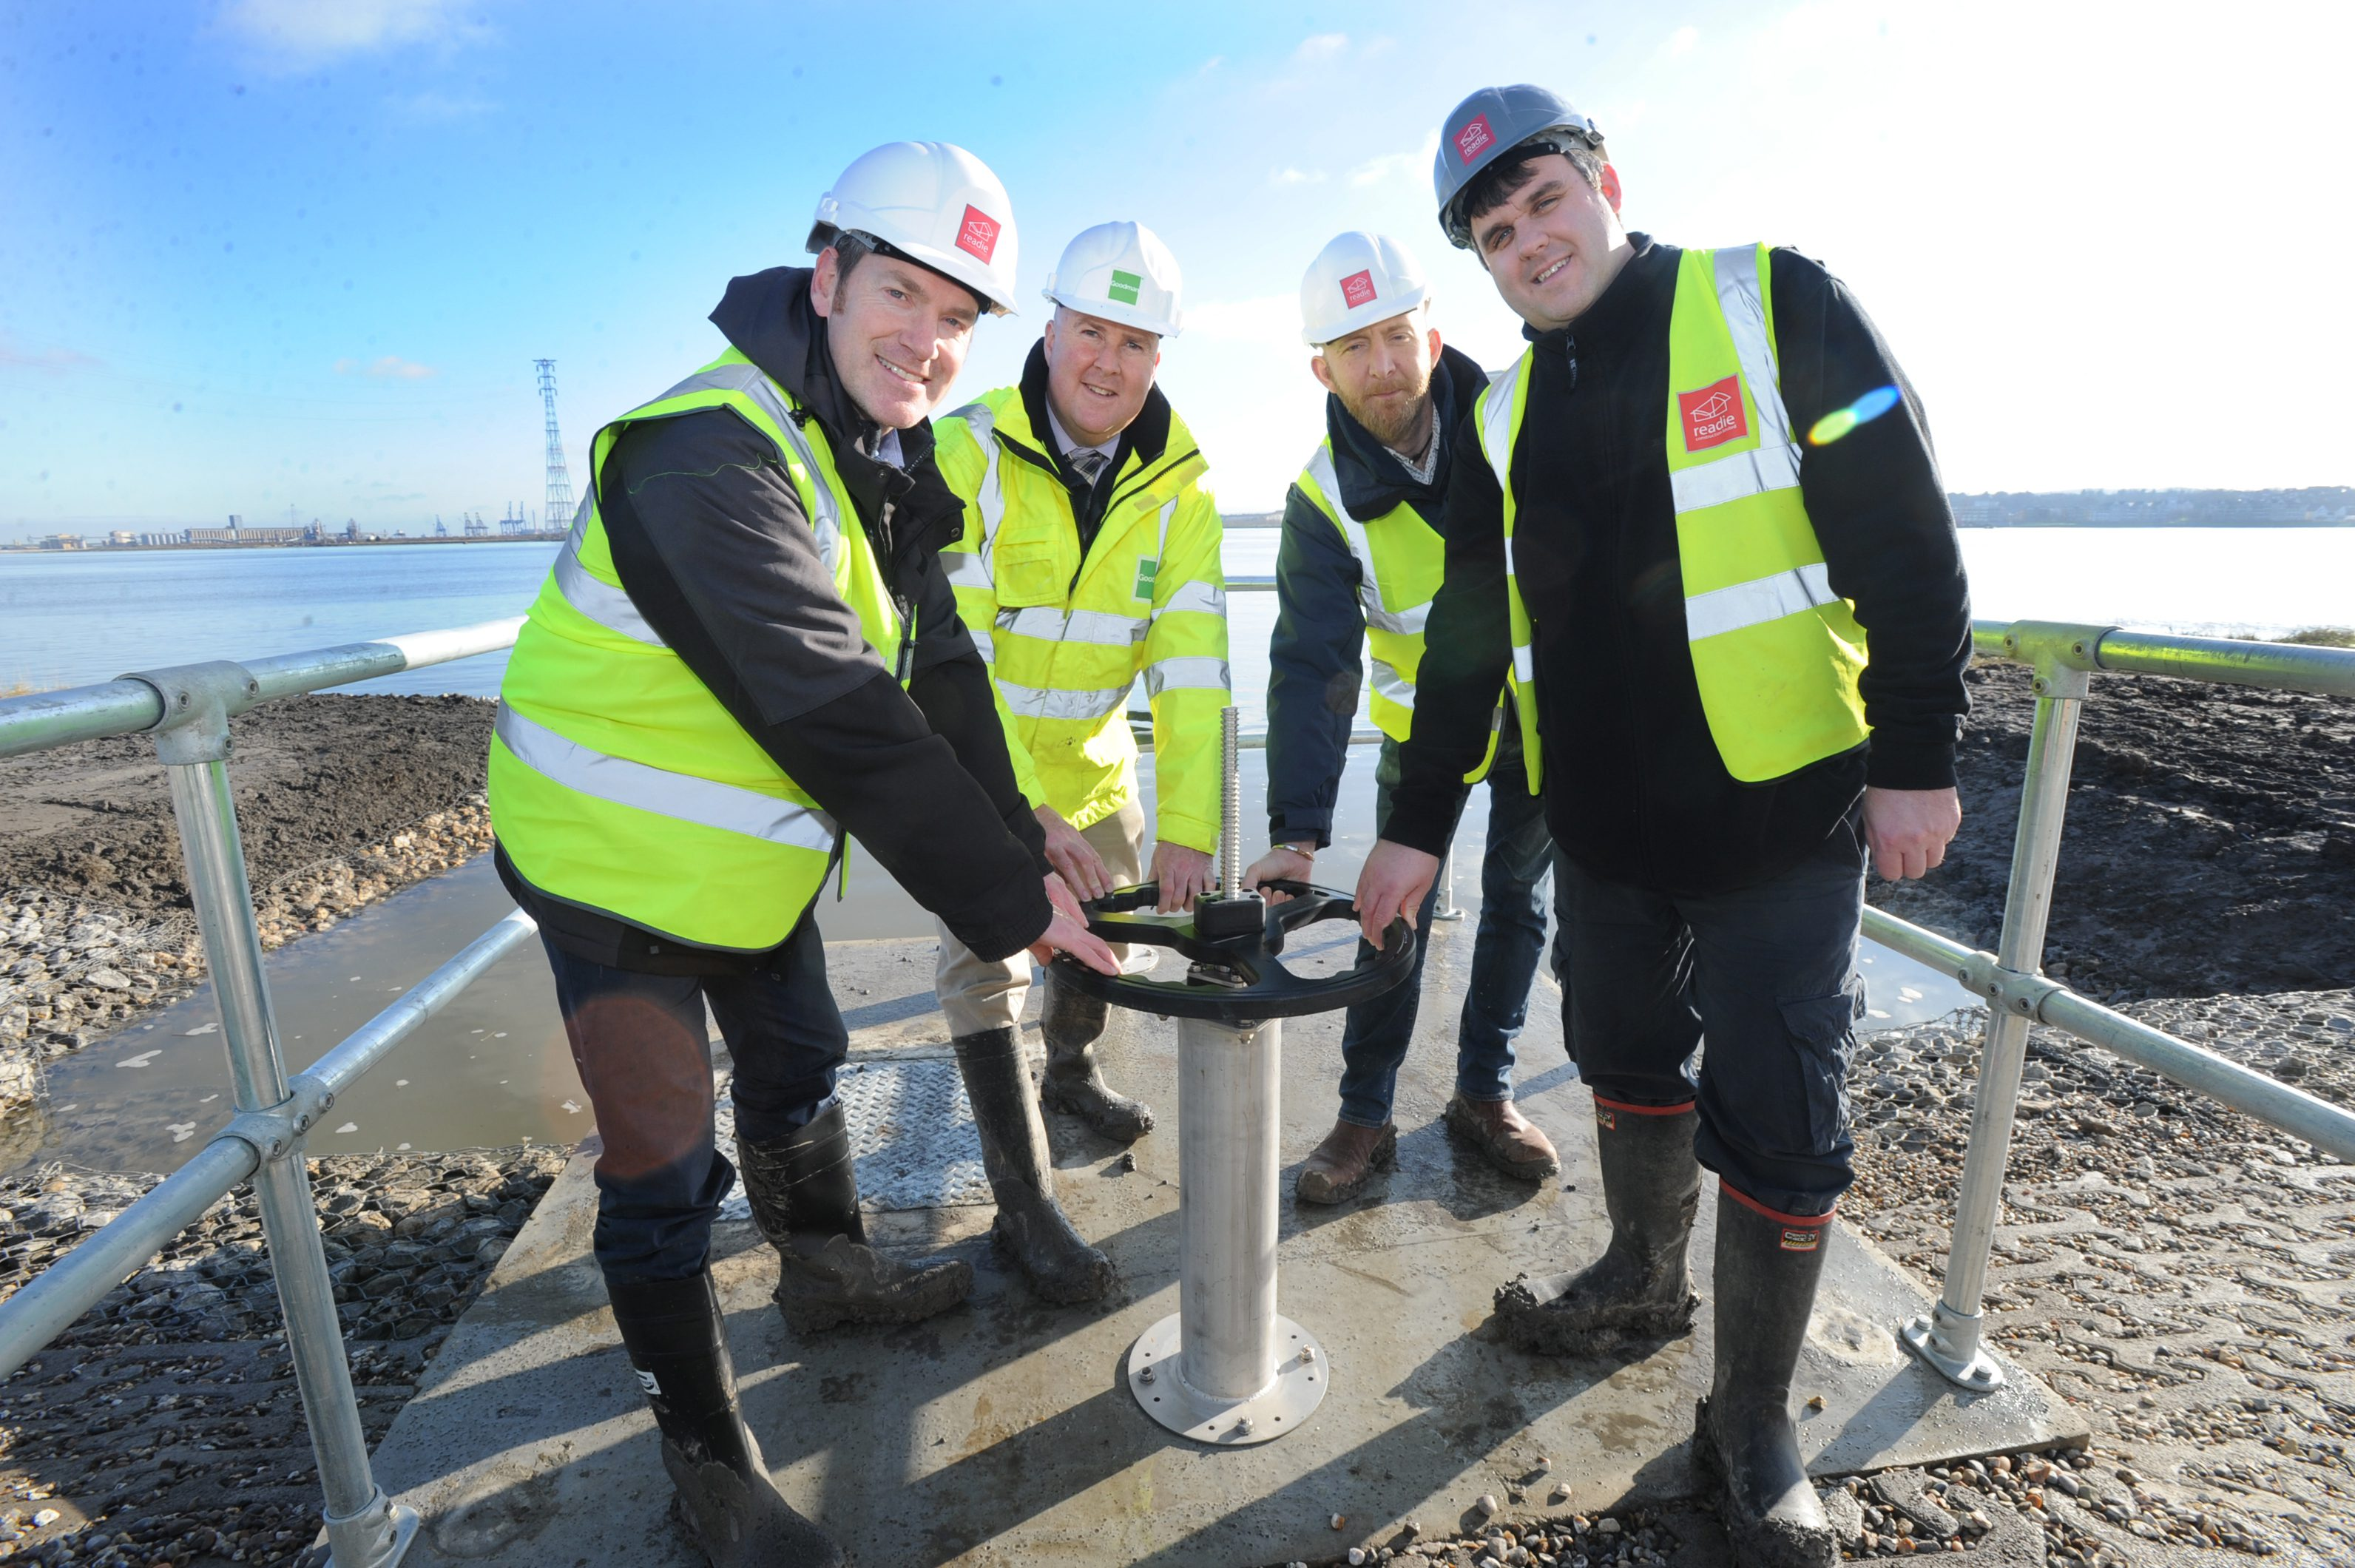 Work with the Land Trust: environmental officers opening the inlet valve to allow the river Thames water into the Oliver Road Lagoons development in Essex